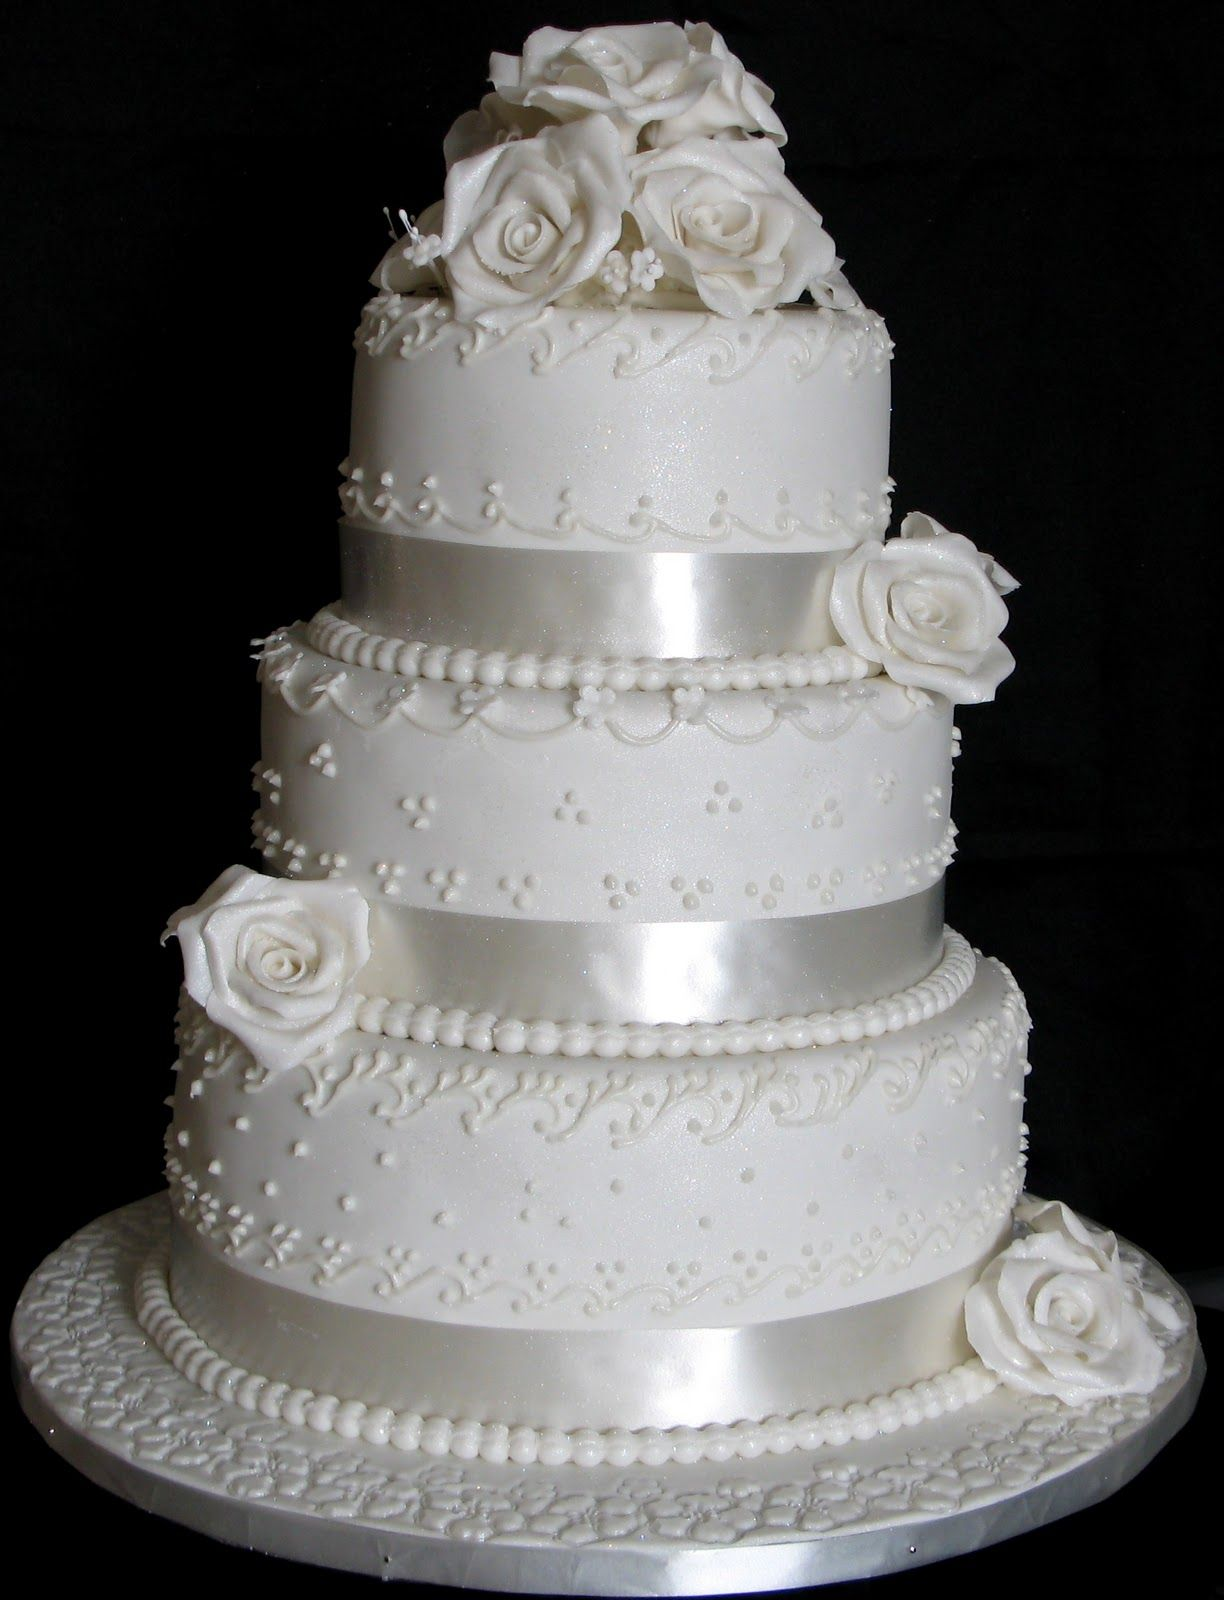 3 tier wedding cakes | this wedding cake was made for a bride from ...